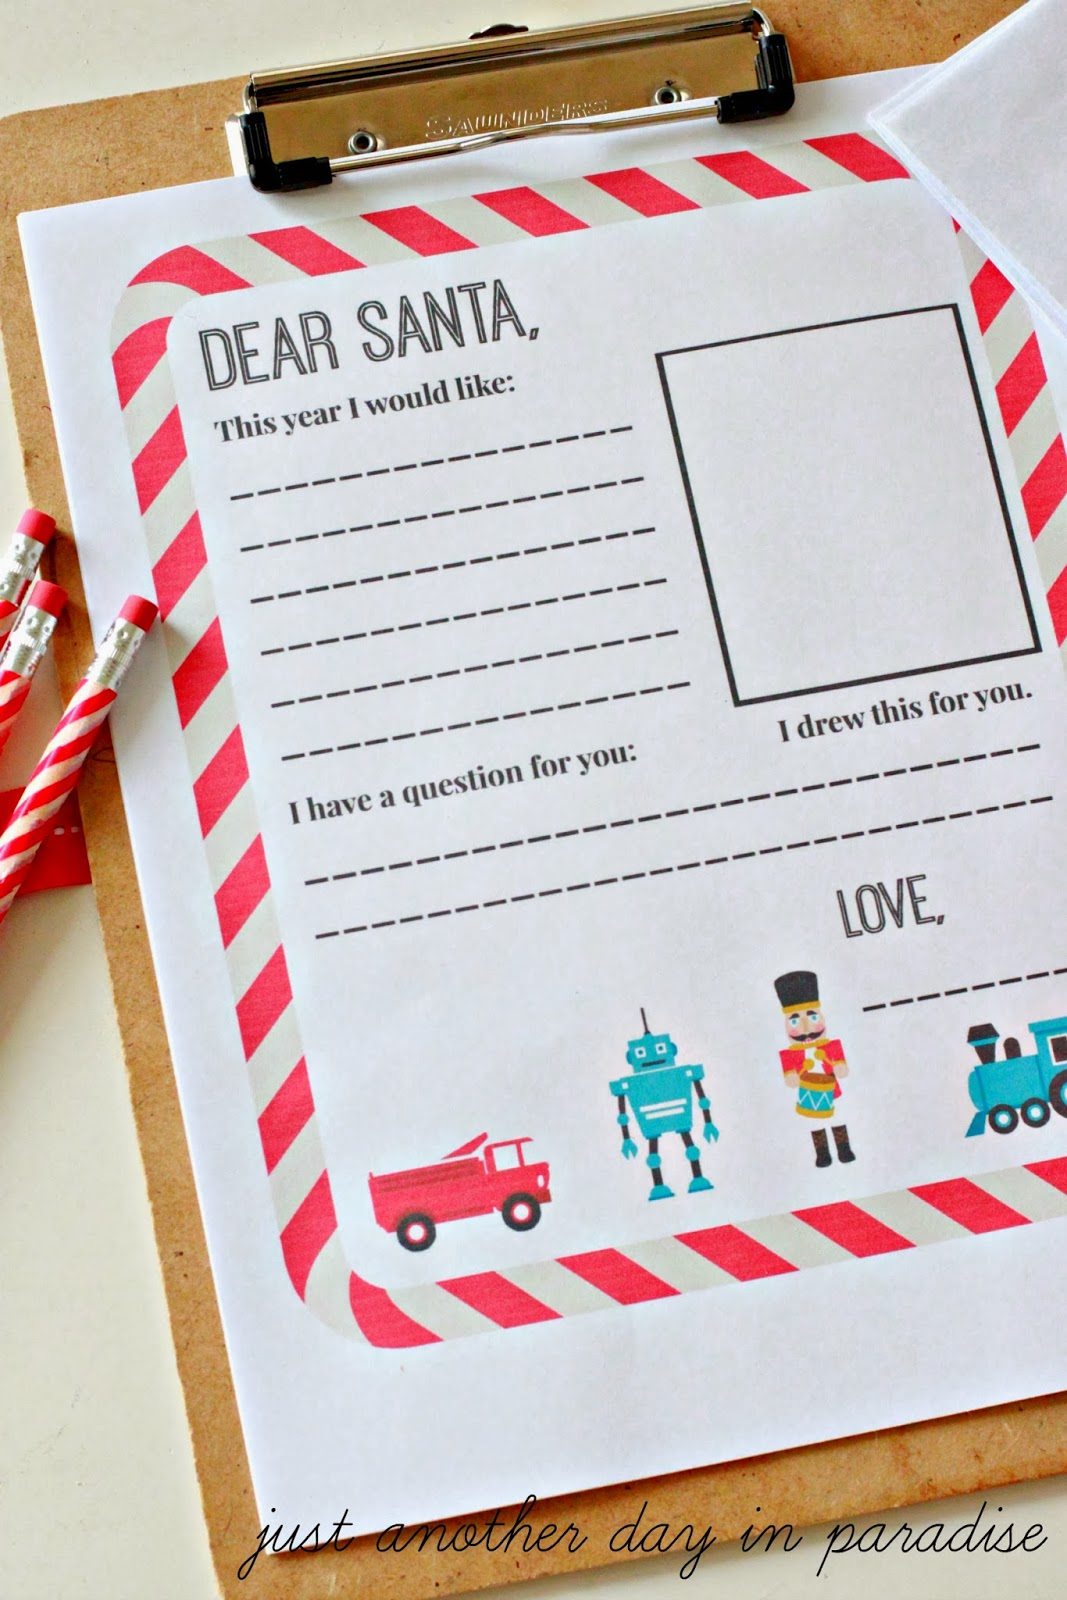 dear santa essay 4 best images of printable santa letter writing paper - free printable santa writing paper, santa letter paper template and dear santa letter find this pin and more on letters to santa by pinning teacher .